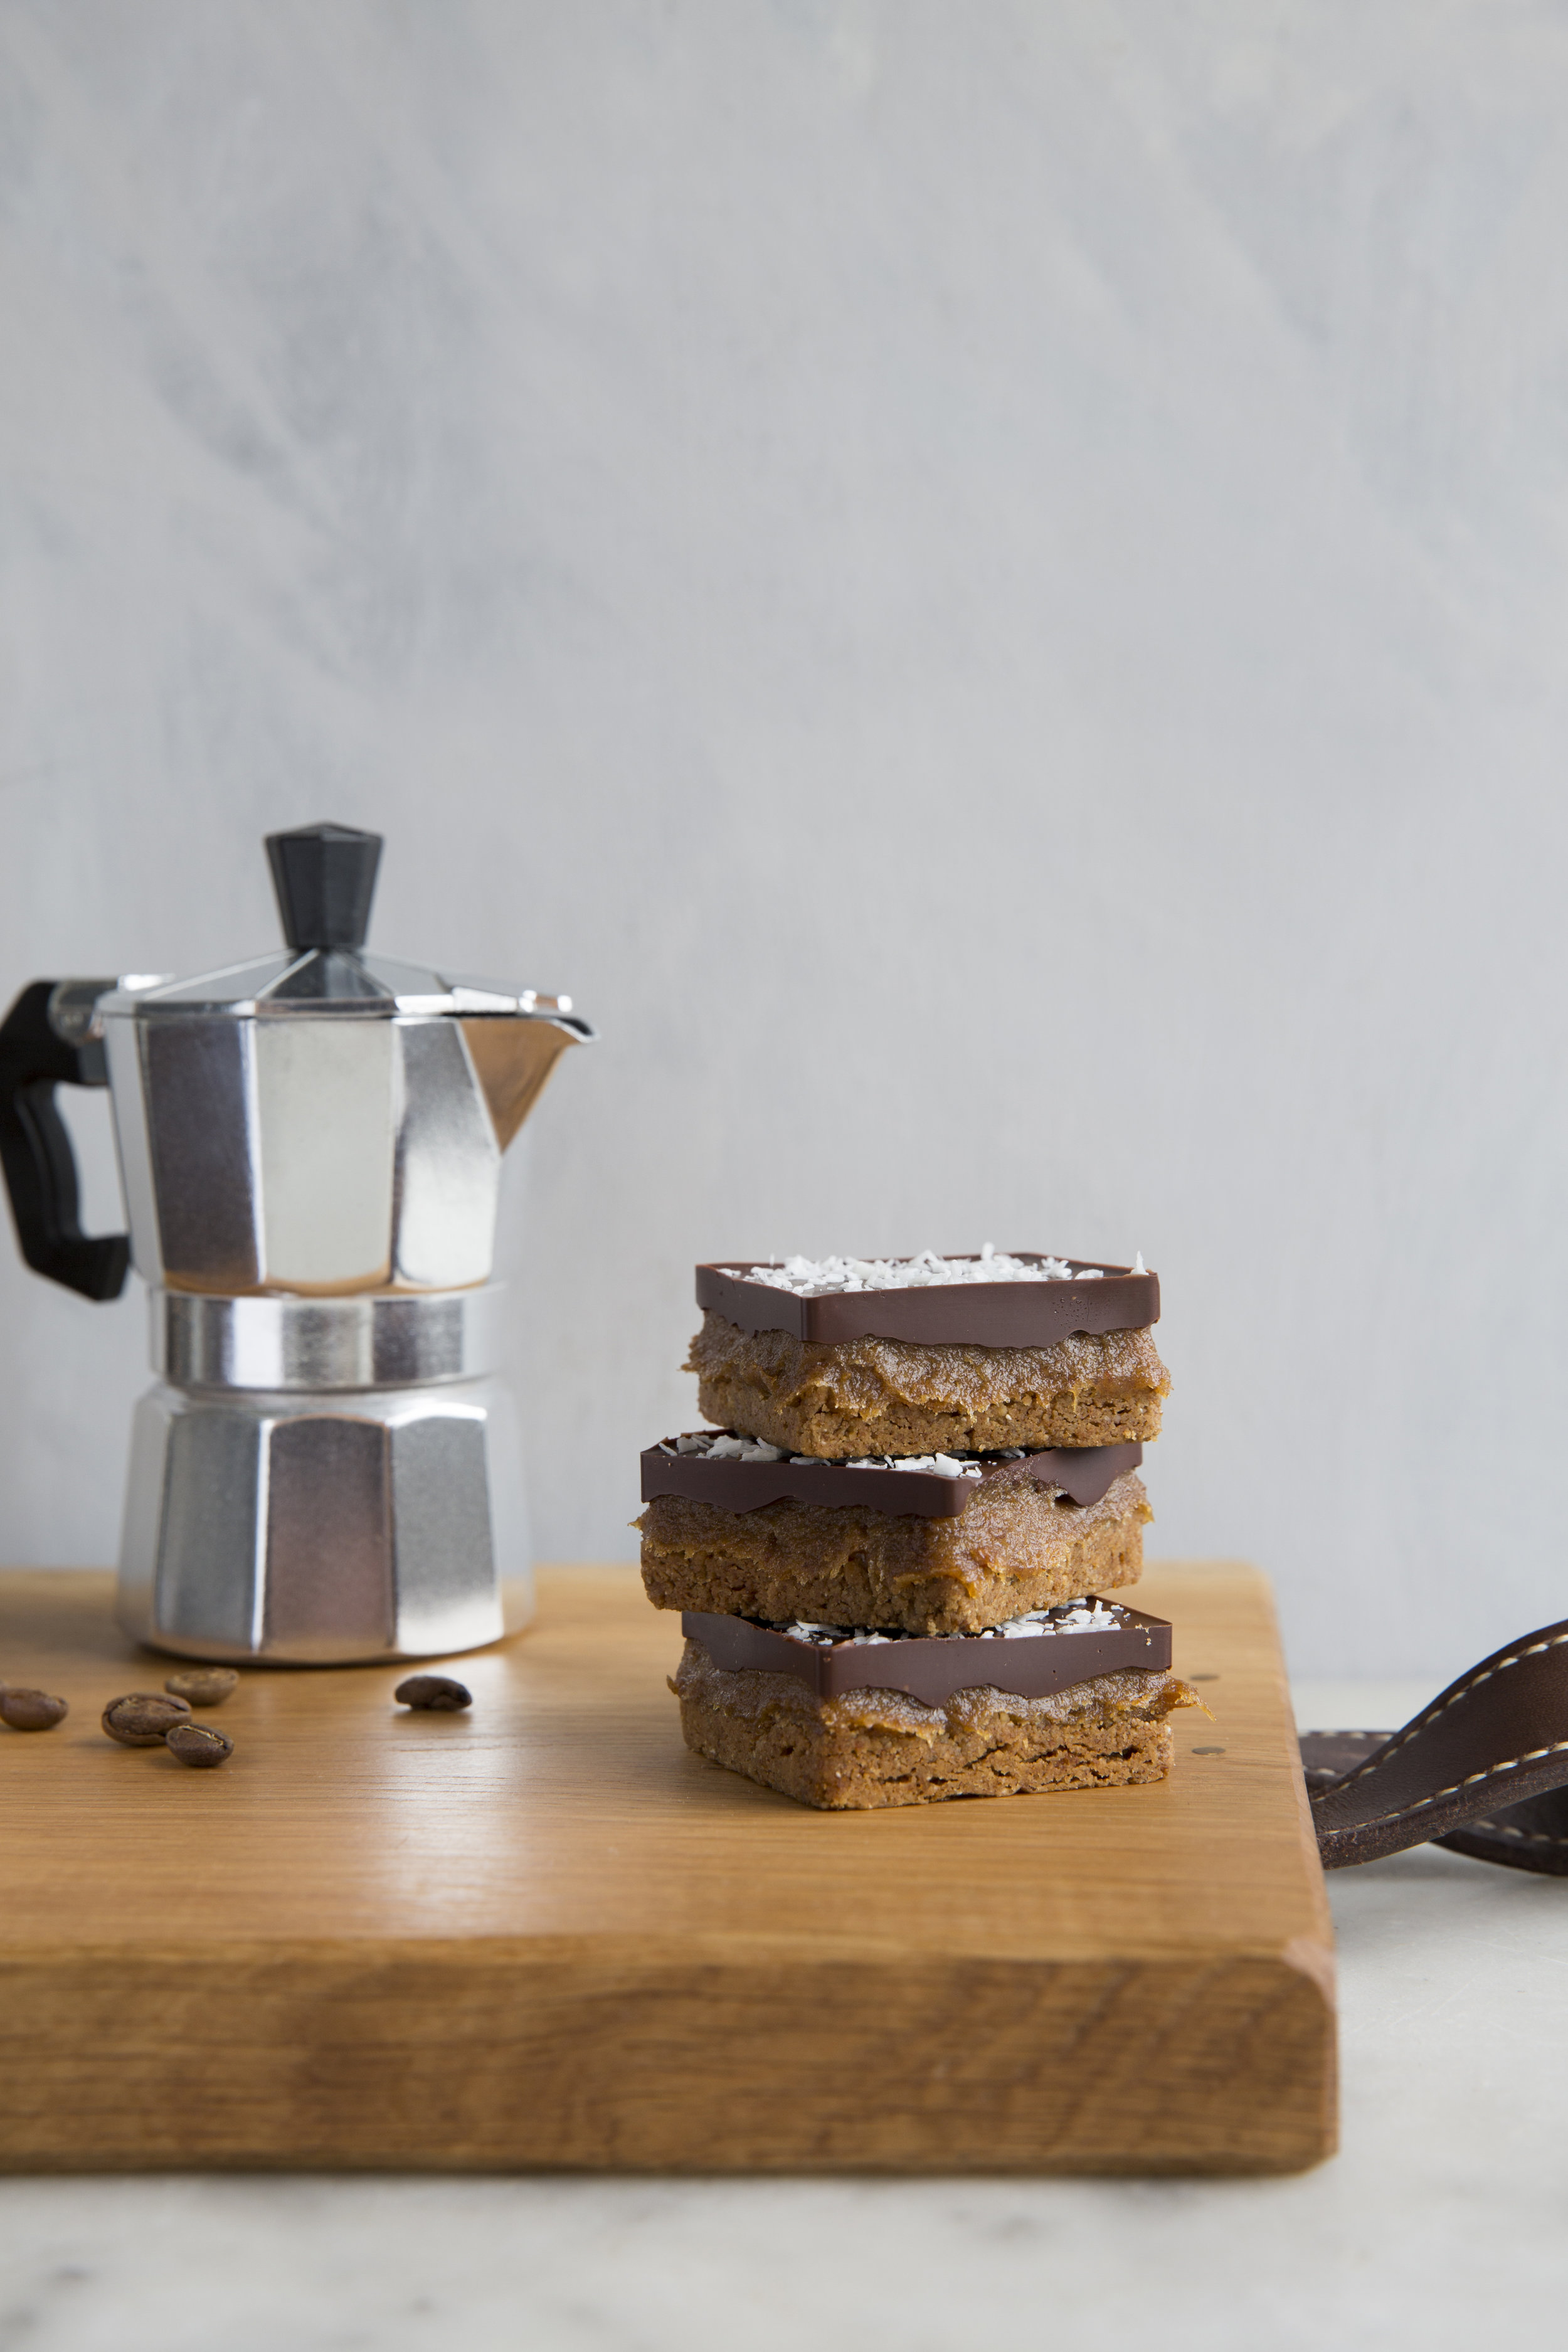 Three Elements. The coffee pot also has the added bonus of the black top lid handle which adds another peak to the landscape and the spout at this angle frames the stack of caramel short breads. The wave of leather to the right, leads the eye in or out of the image nicely.